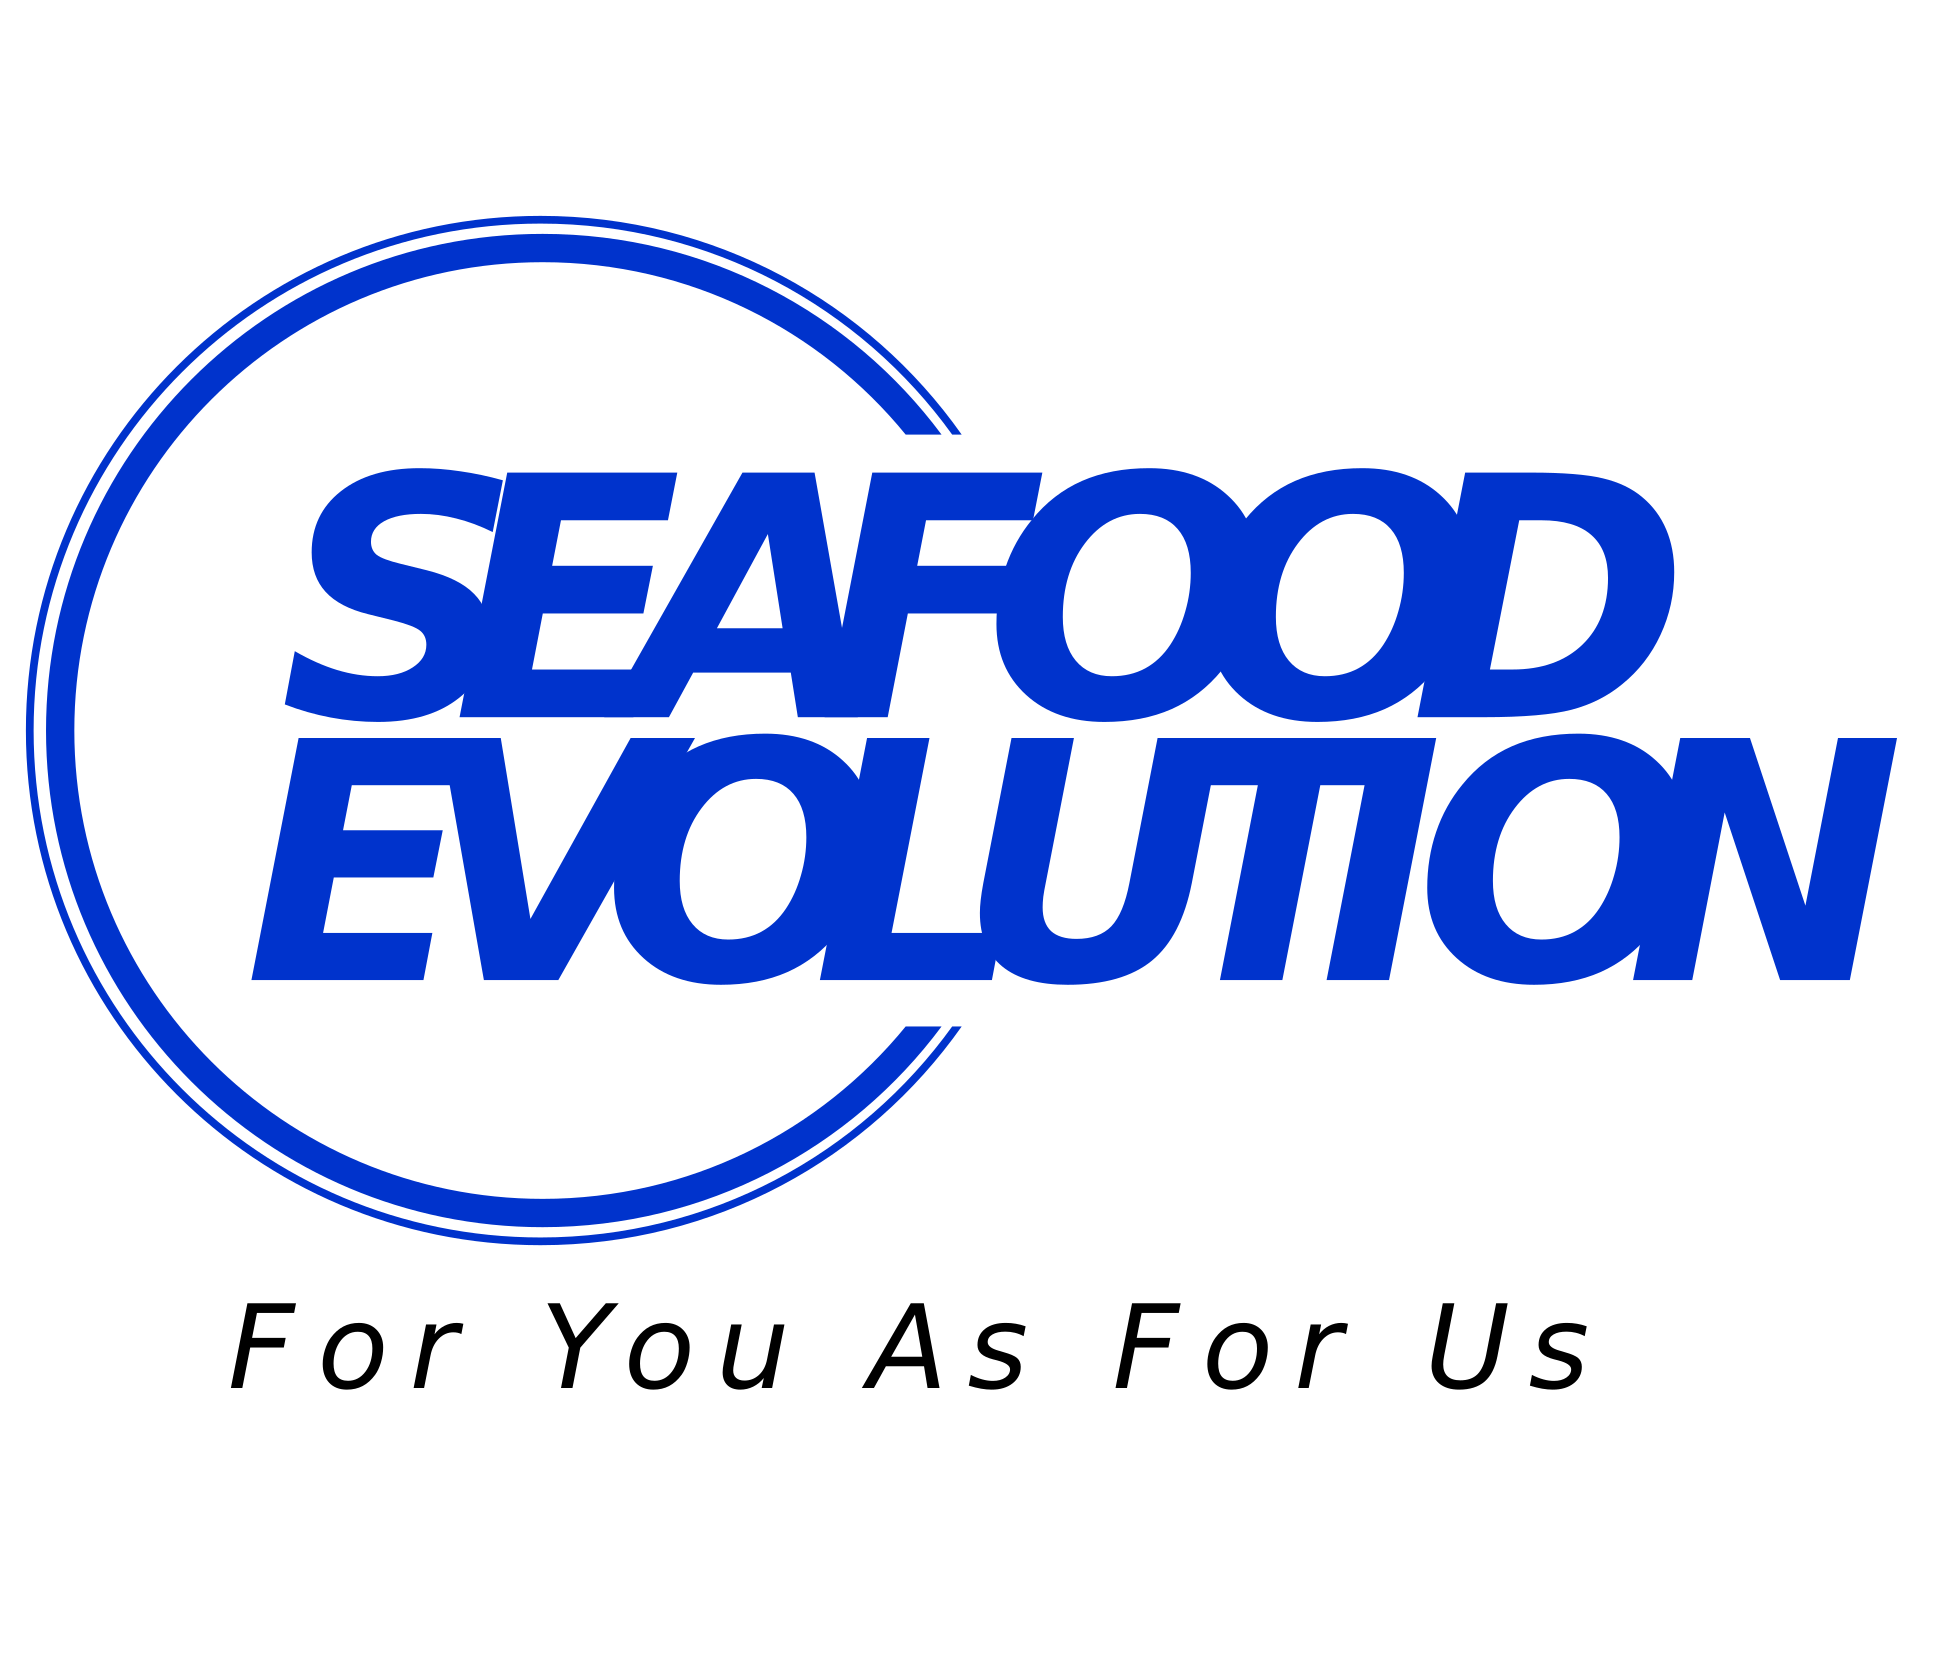 Seafood Evolution